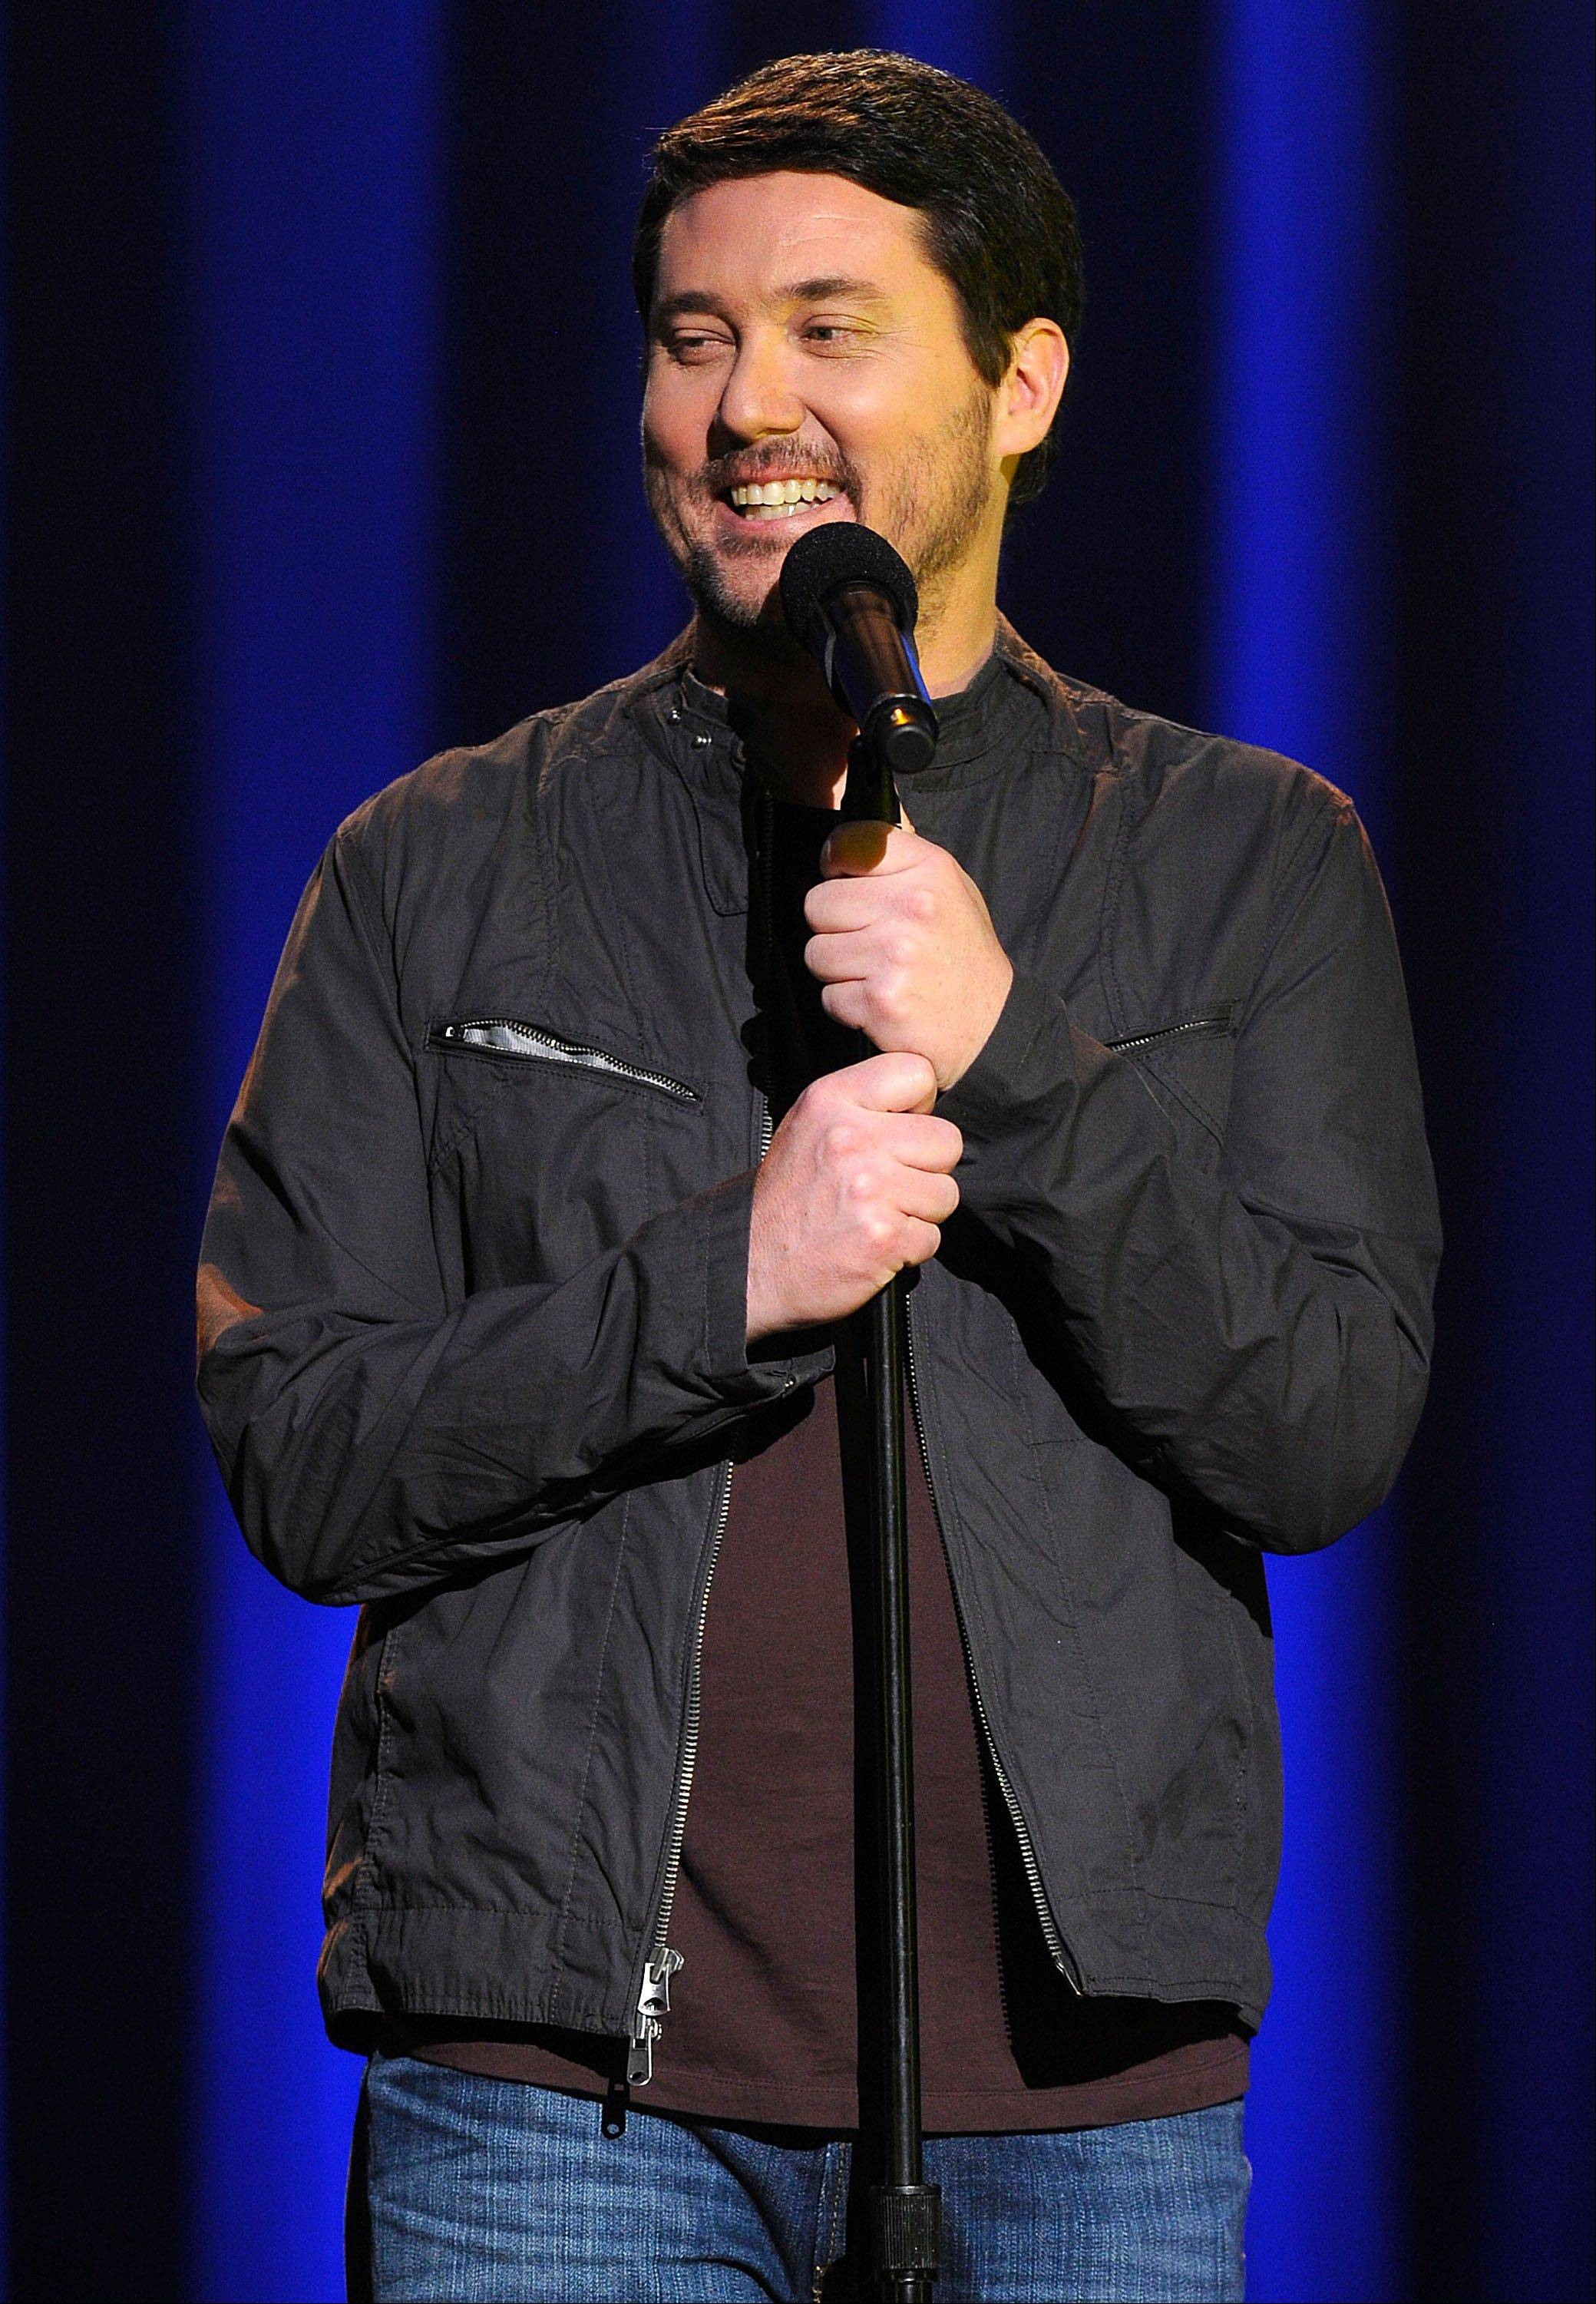 Comedian Doug Benson makes a special appearance at Zanies in Rosemont on Sunday, May 5.